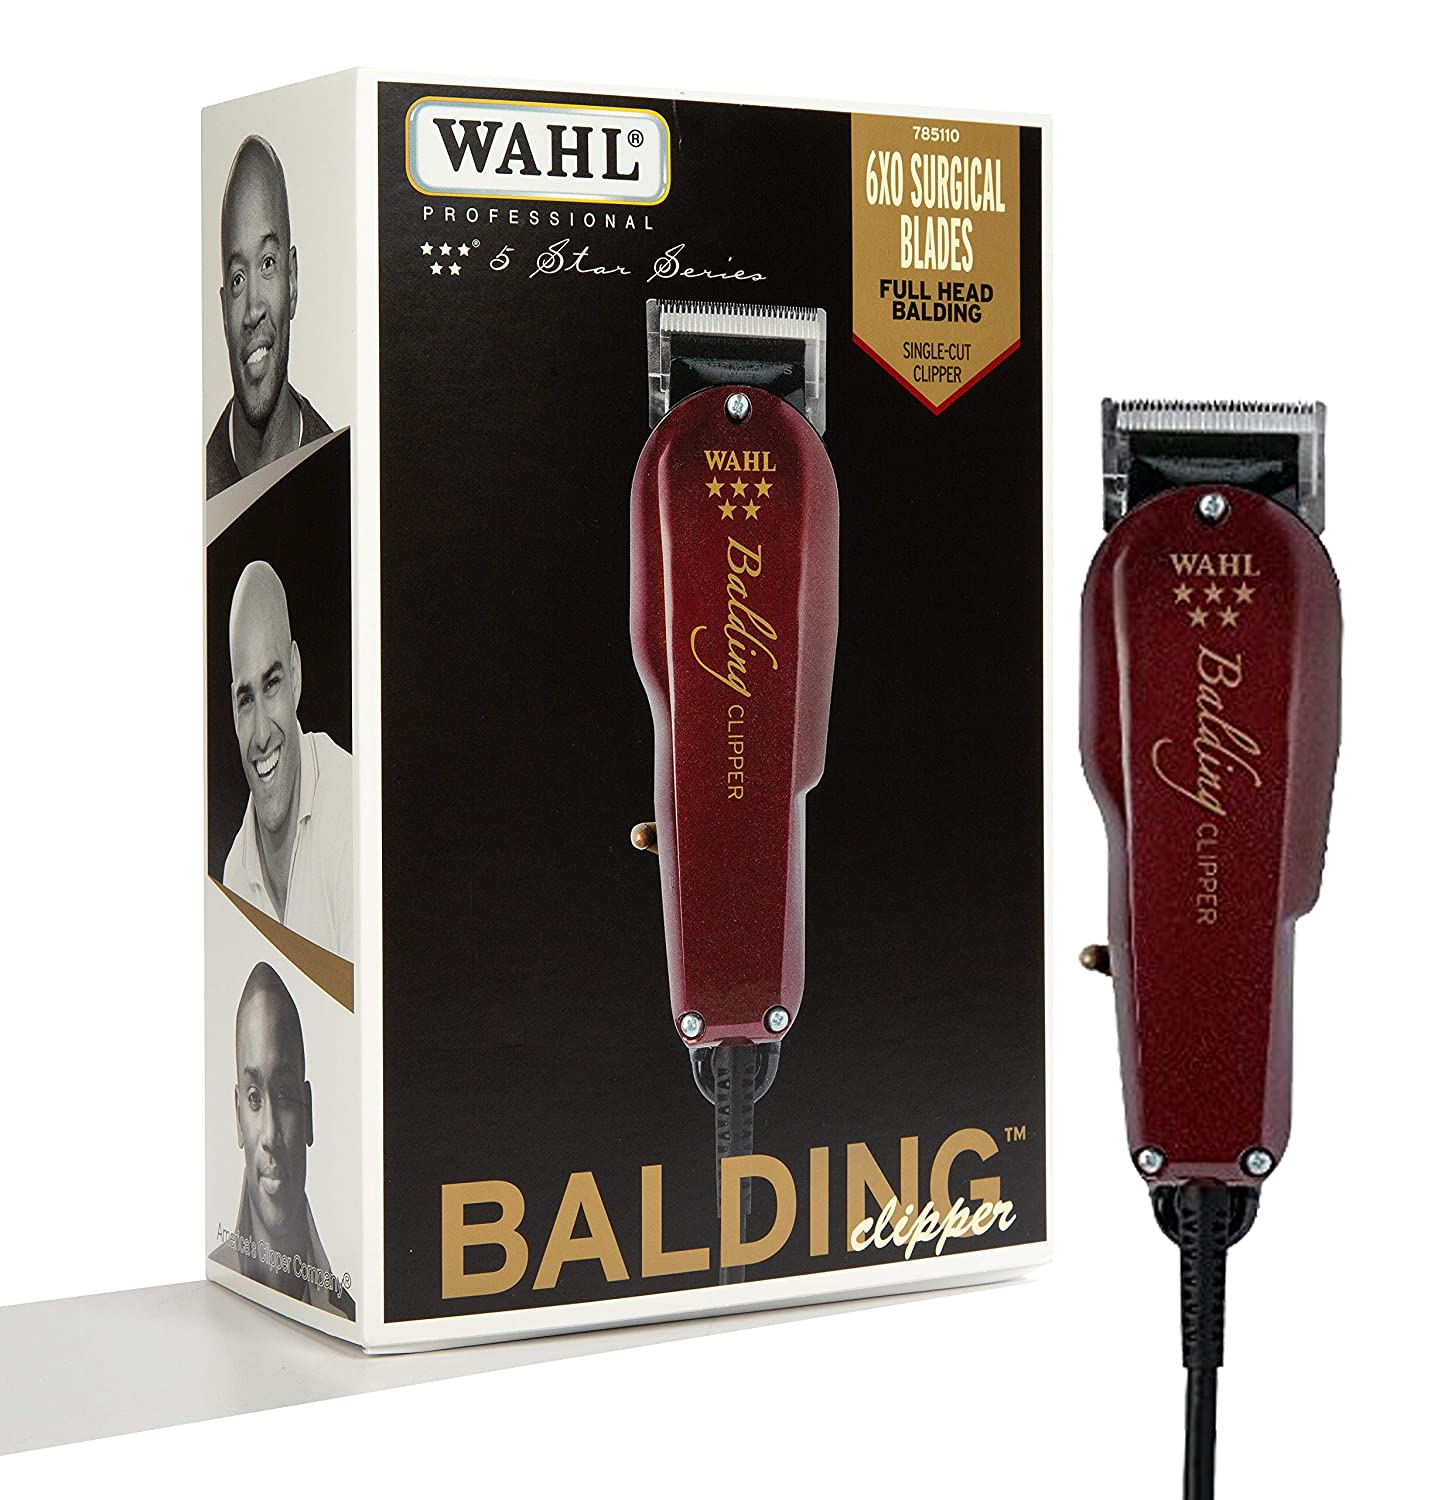 Wahl Professional 5-Star Balding Clipper 8110 Great for Barbers and Stylists Cuts Surgically Close for Full Head Balding Twice the Speed of Pivot Motor Clippers Accessories Included